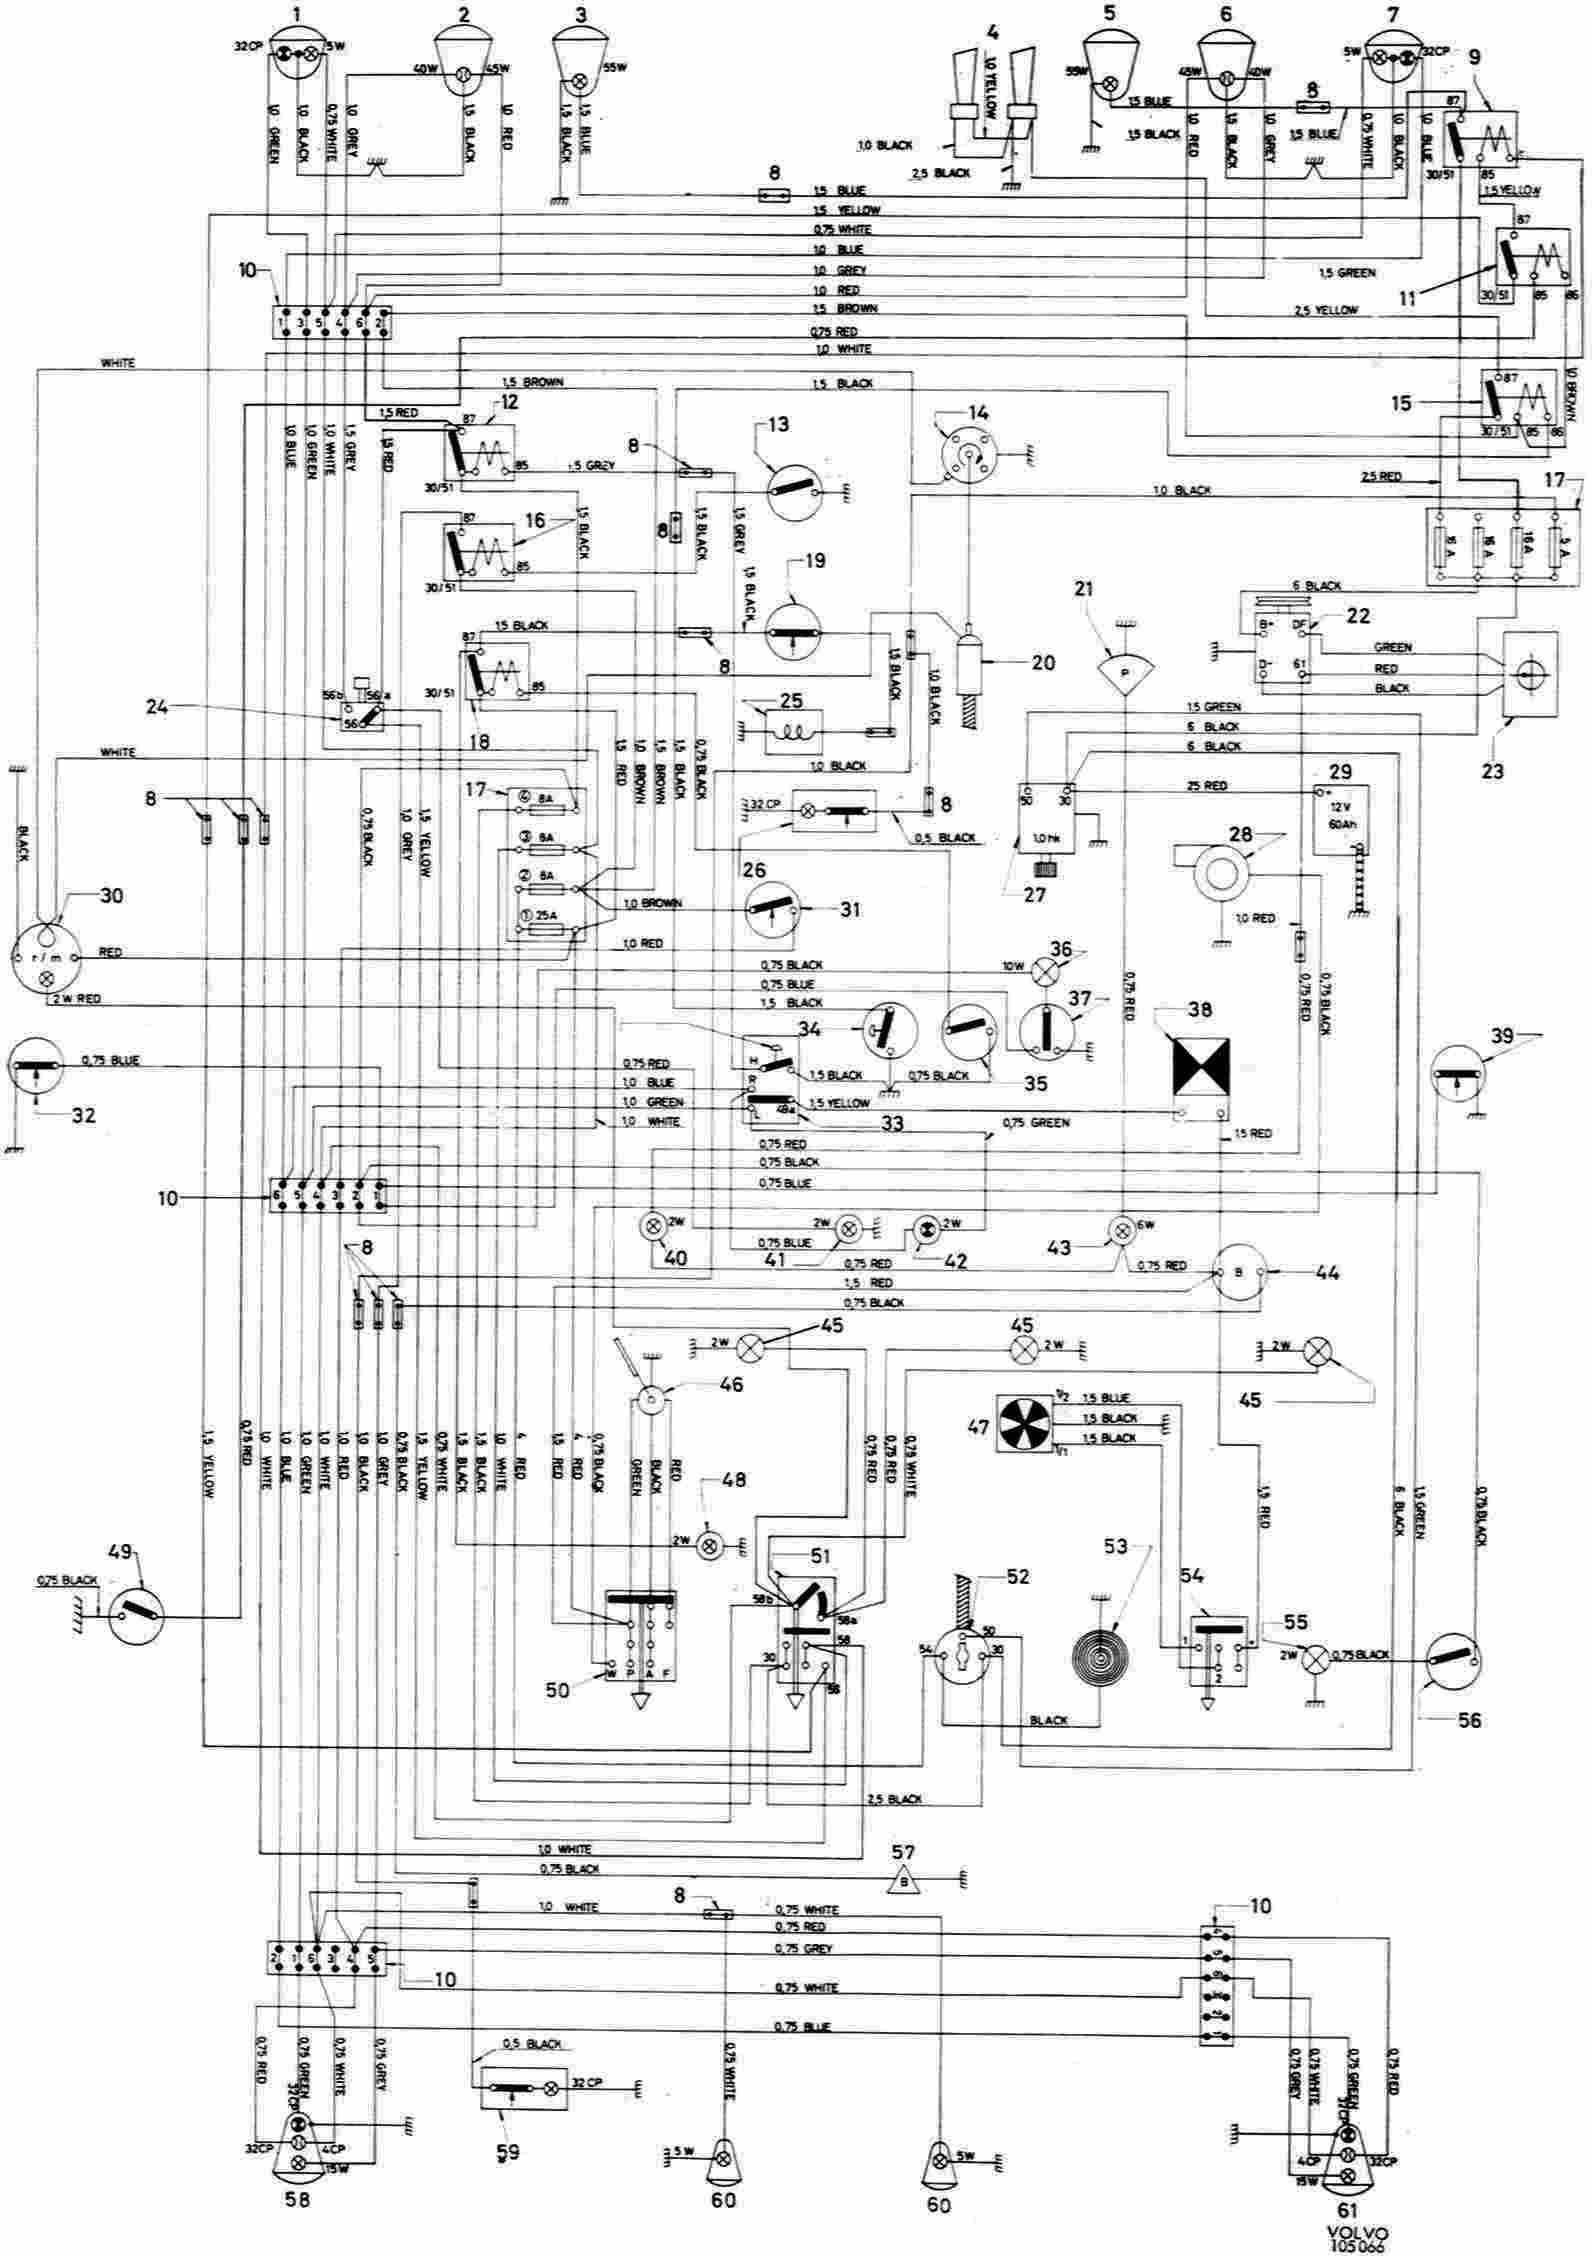 hight resolution of 2012 volvo s80 wiring diagram free download wiring diagram schematic volvo vn wiring diagram 2001 volvo wiring diagram